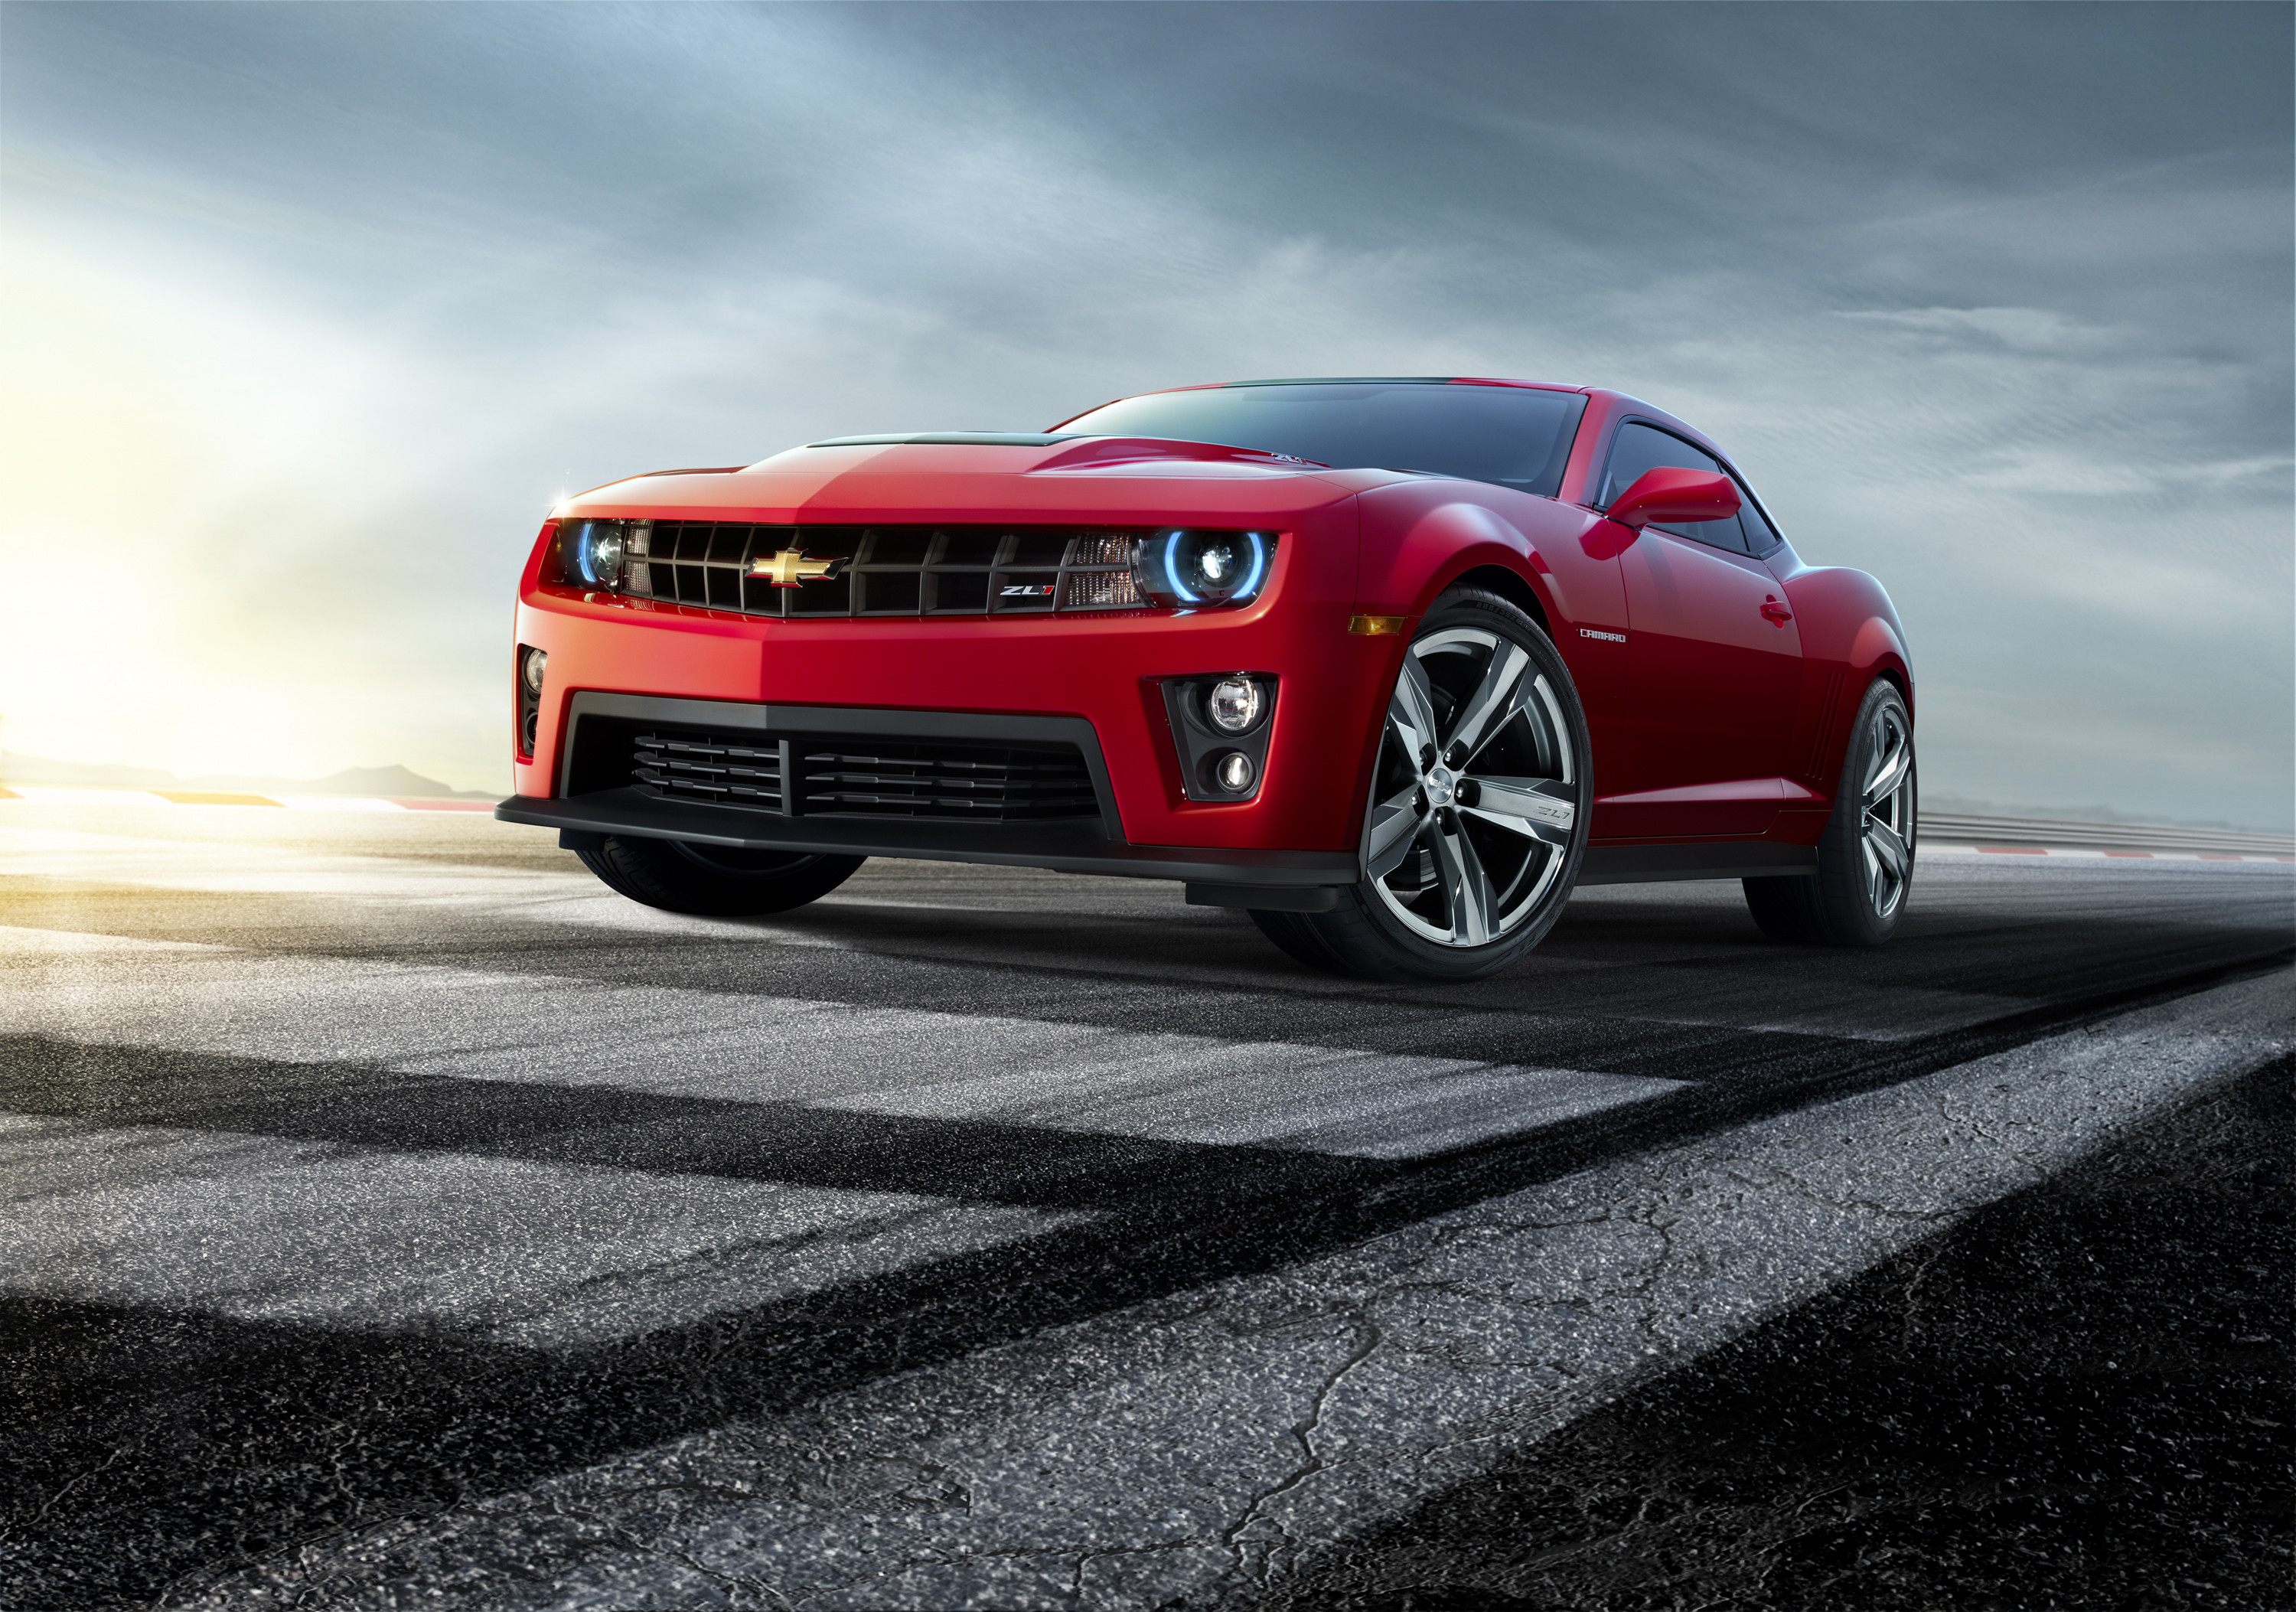 3000x2106 2012 Camaro ZL1 Wallpapers (High Resolution) - Camaro5 Chevy Camaro Forum / Camaro  ZL1, SS and V6 Forums - Camaro5.com